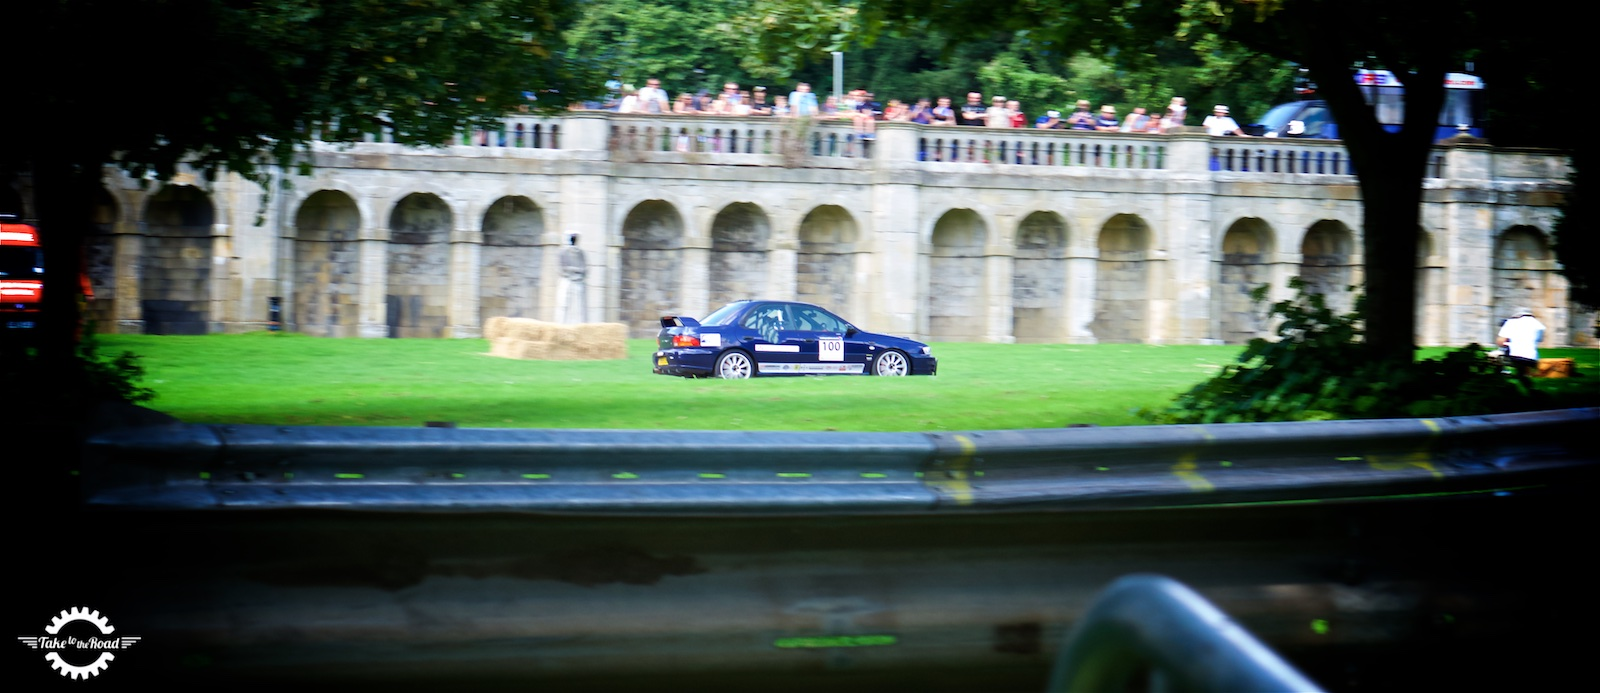 Take to the Road Highlights from Motorsport at the Palace 2017